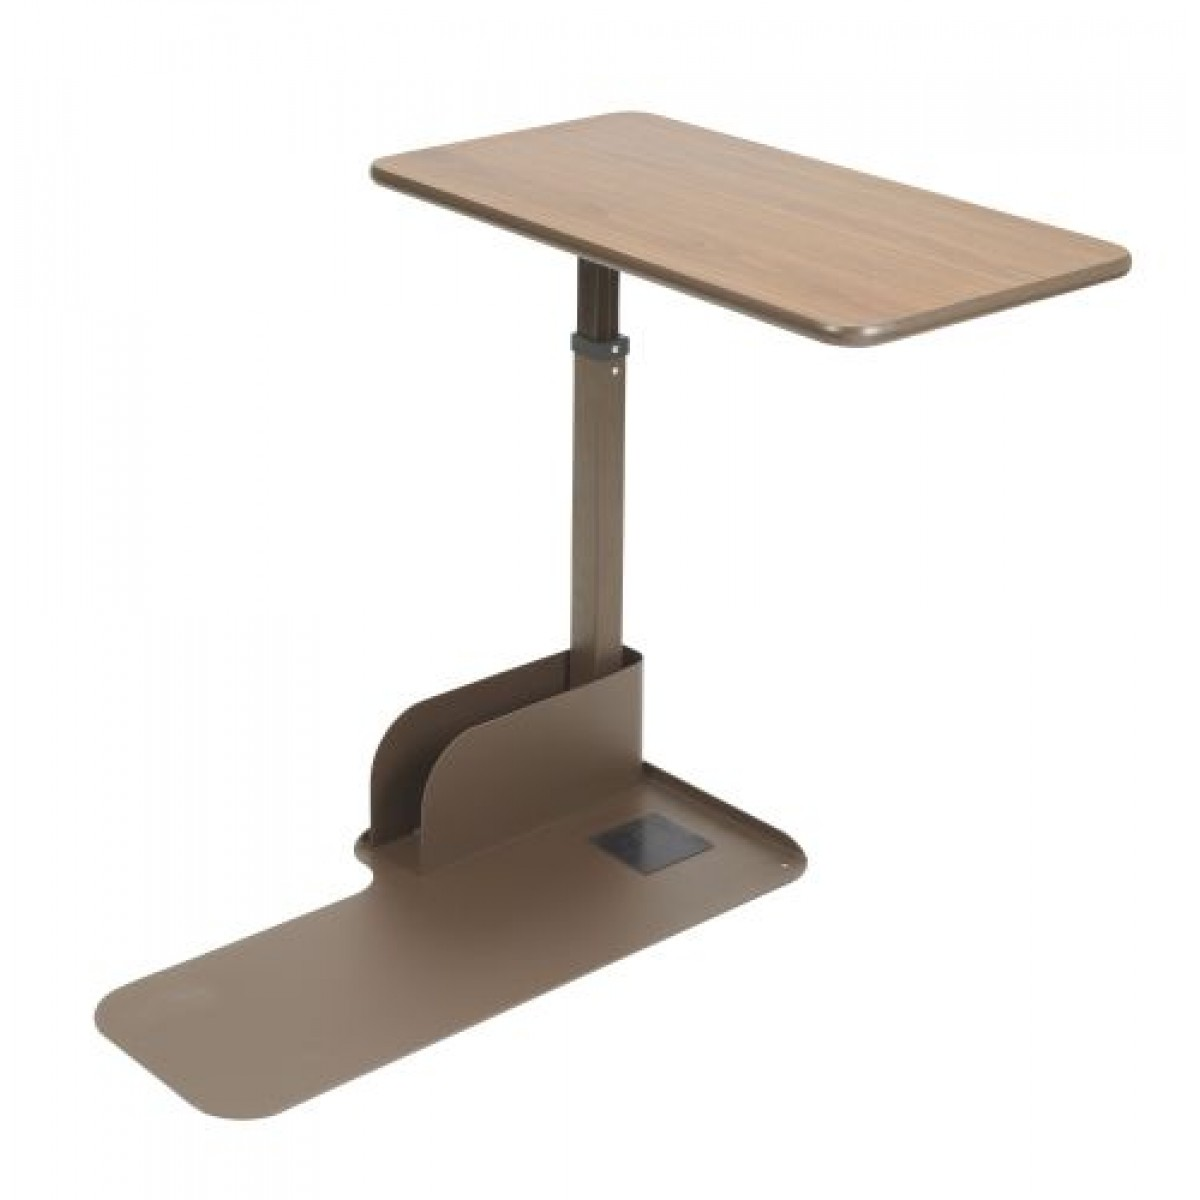 Seat Lift Chair Overbed Table By Drive Medical 13085ln